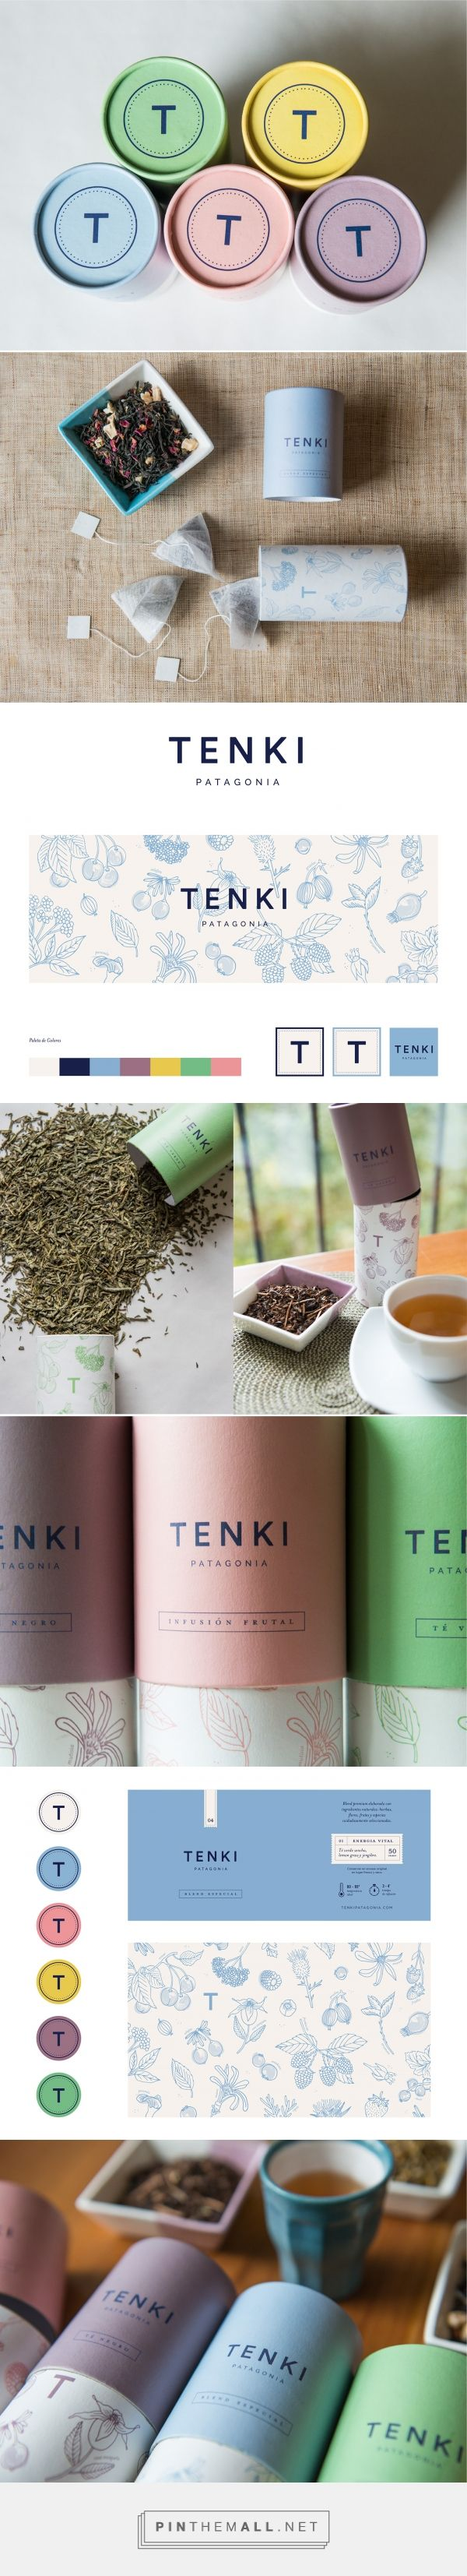 Tenki Patagonia :: Packaging + Branding on Behance. Visual identity, brand design, tea packaging design